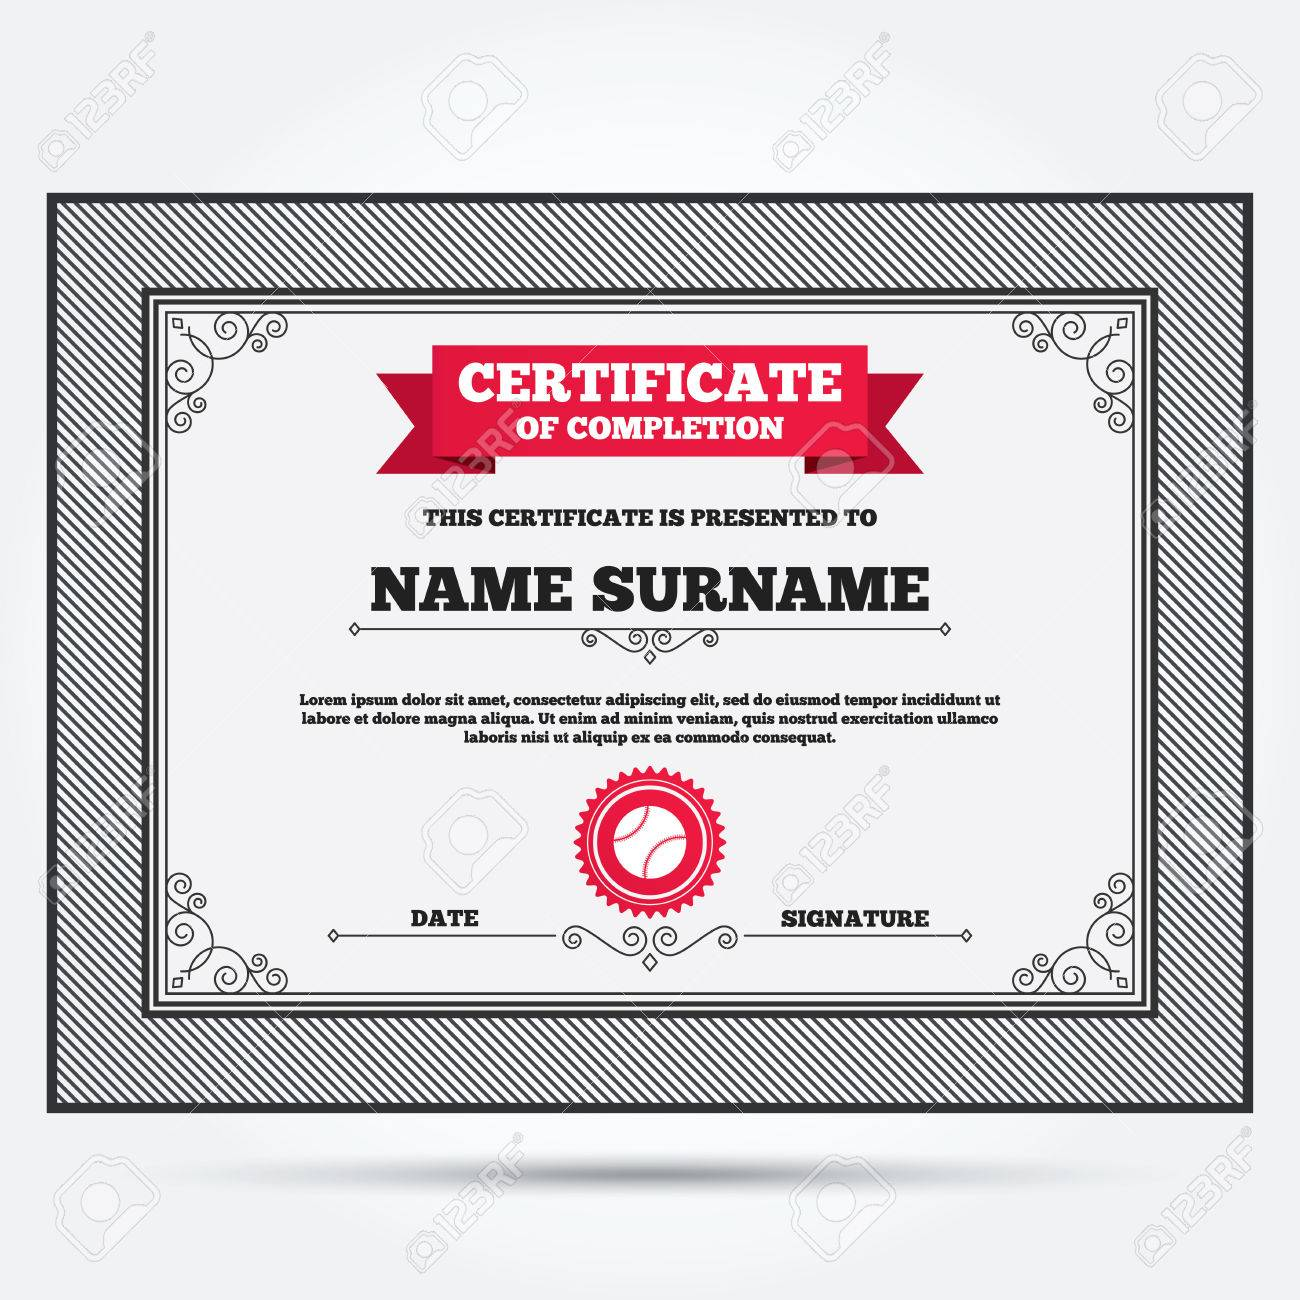 Certificate Of Completion Baseball Ball Sign Icon Sport Symbol